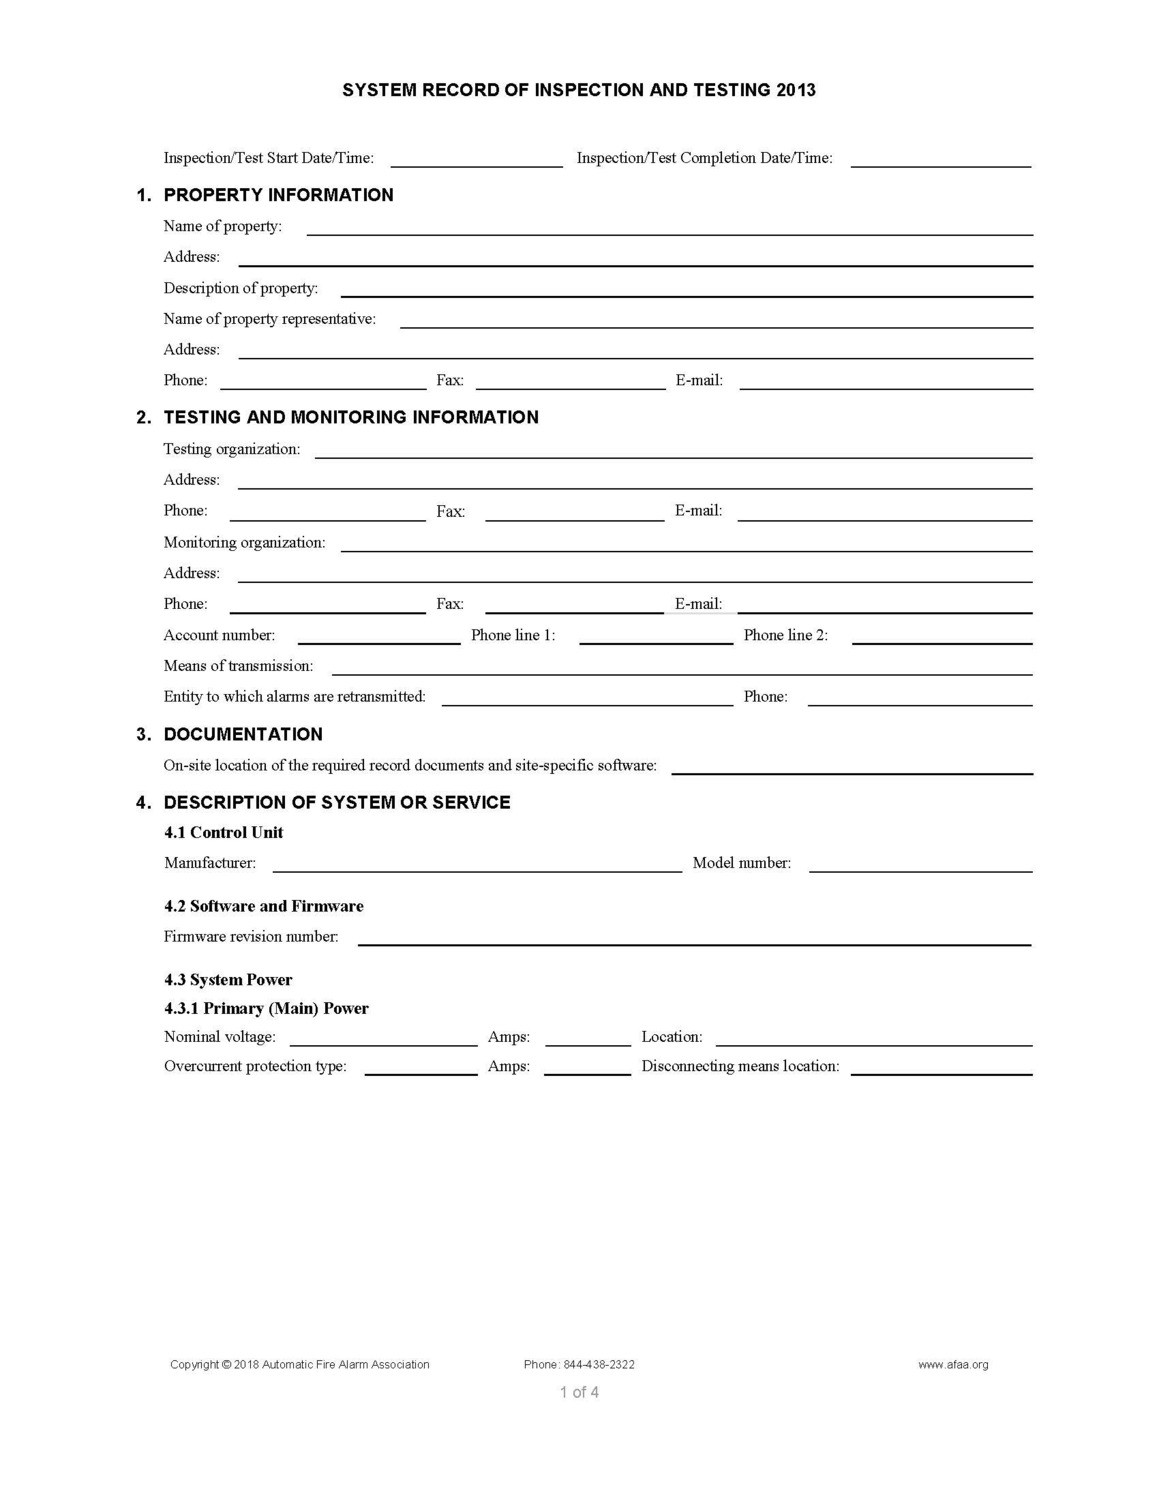 Fire Alarm Inspection and Testing Forms - 2013 Edition